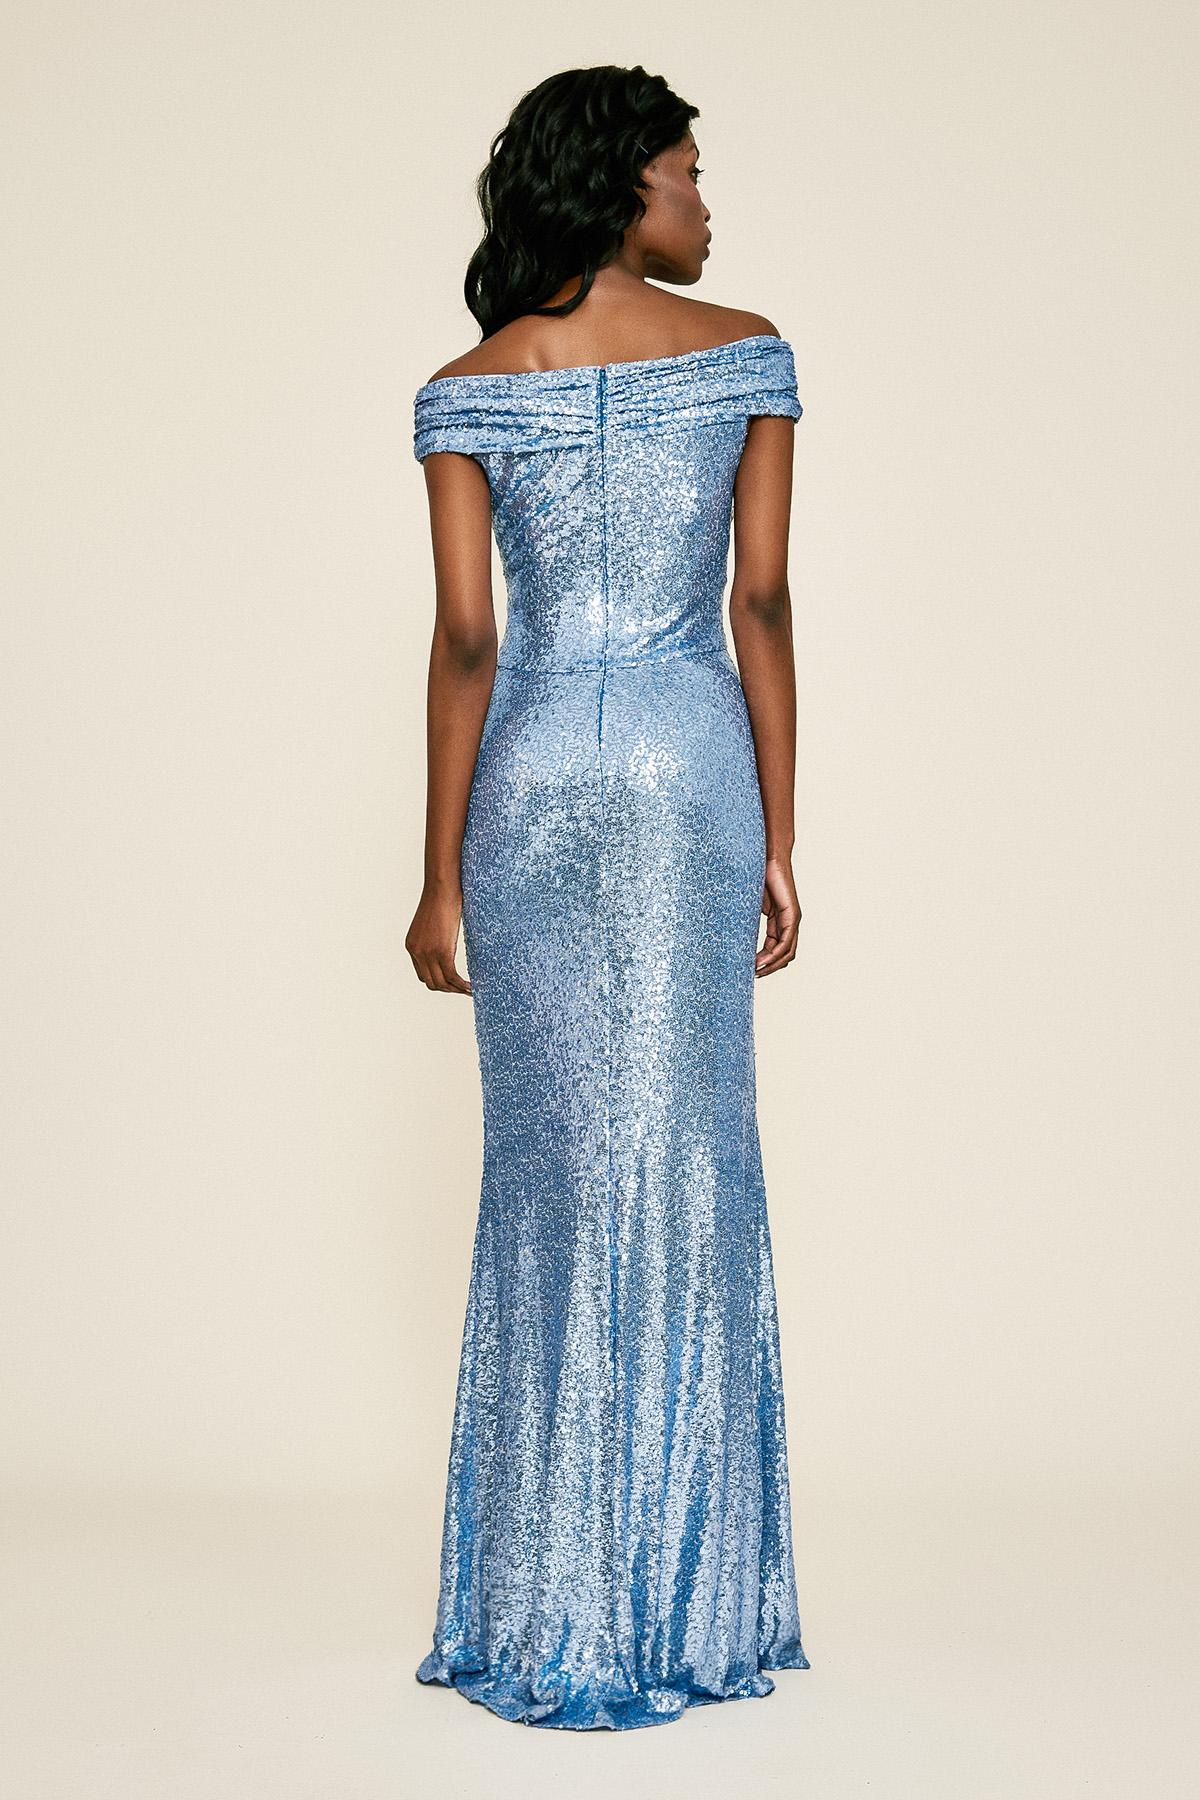 257ebe0a7ab Tadashi Shoji - Blue Whitson Off-the-shoulder Sequin Gown - Lyst. View  fullscreen